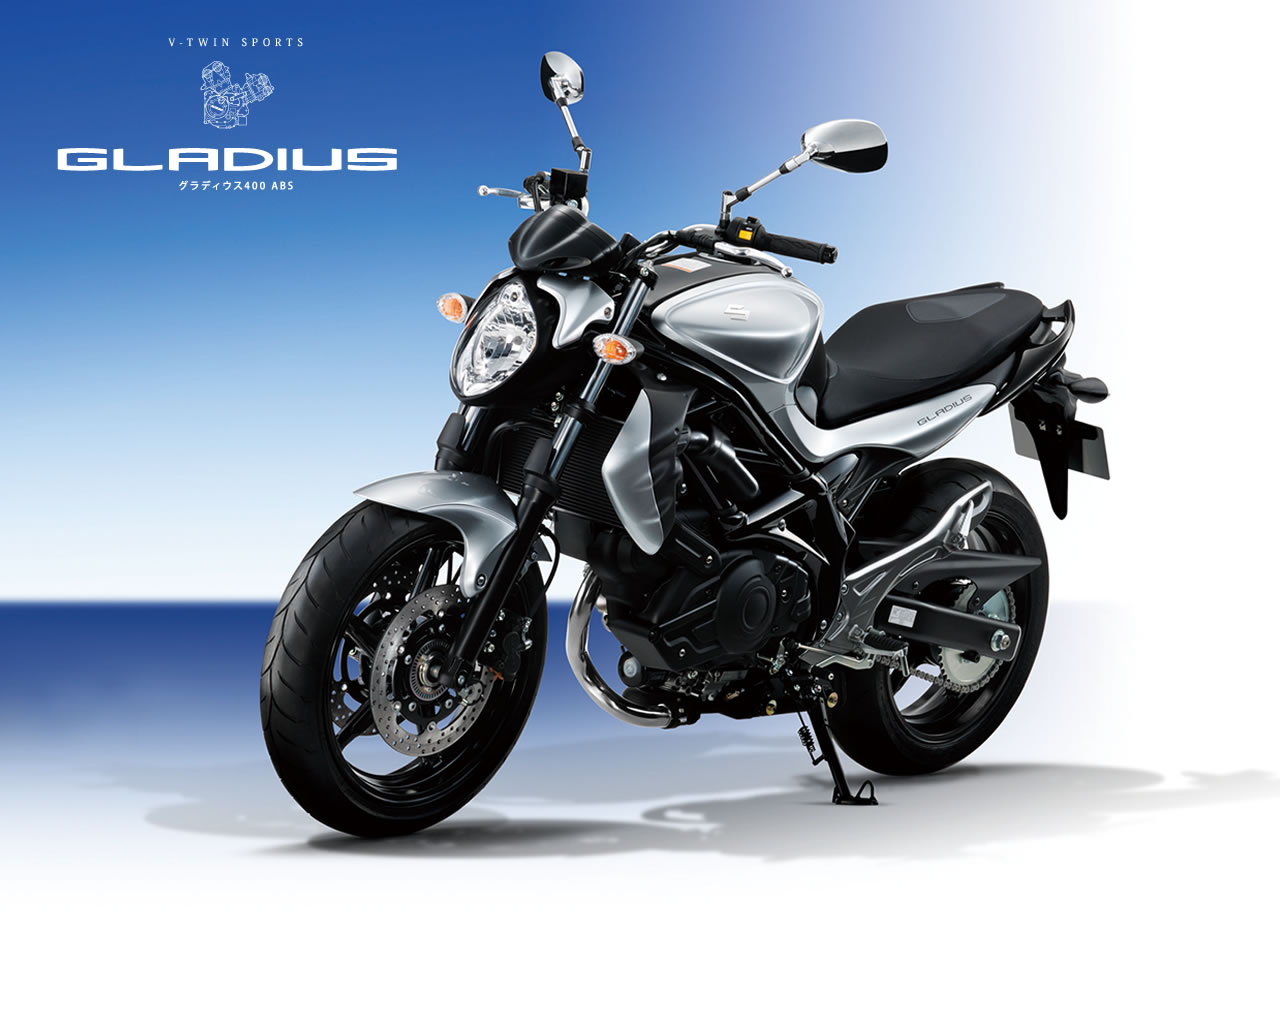 planet japan blog suzuki gladius 400 abs 2011. Black Bedroom Furniture Sets. Home Design Ideas